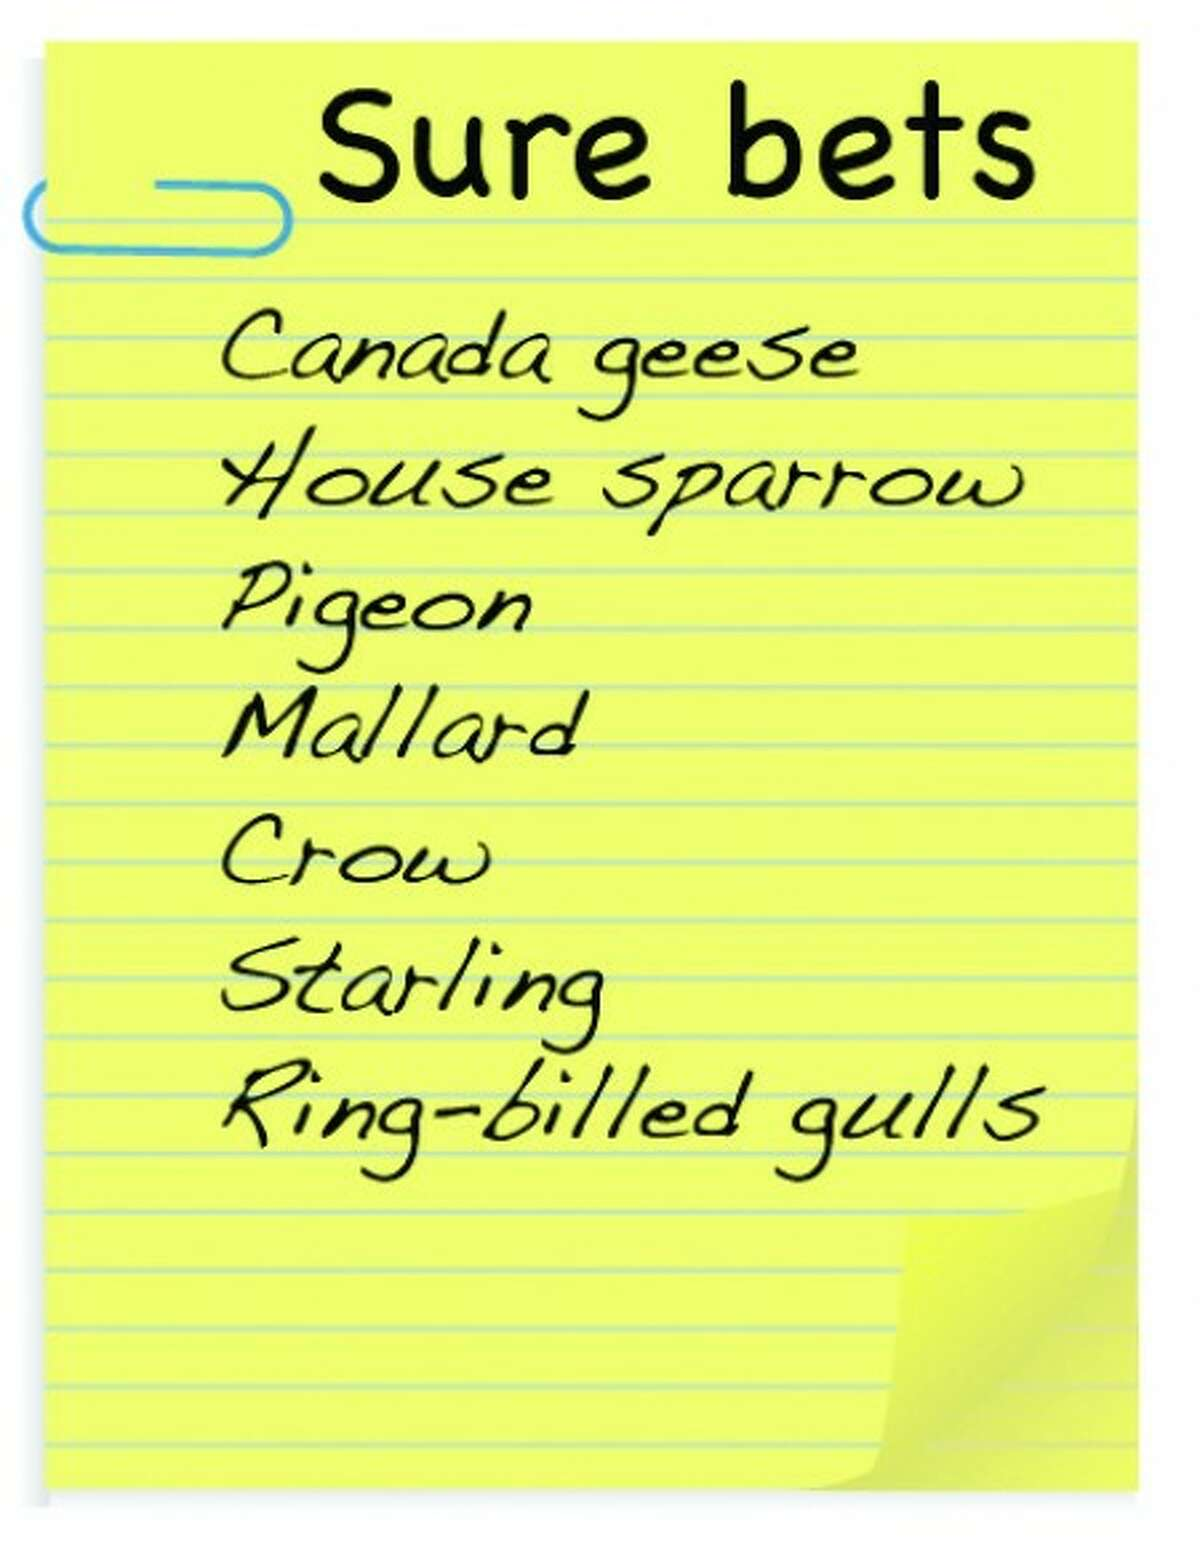 A wish list for the Christmas Bird Count.